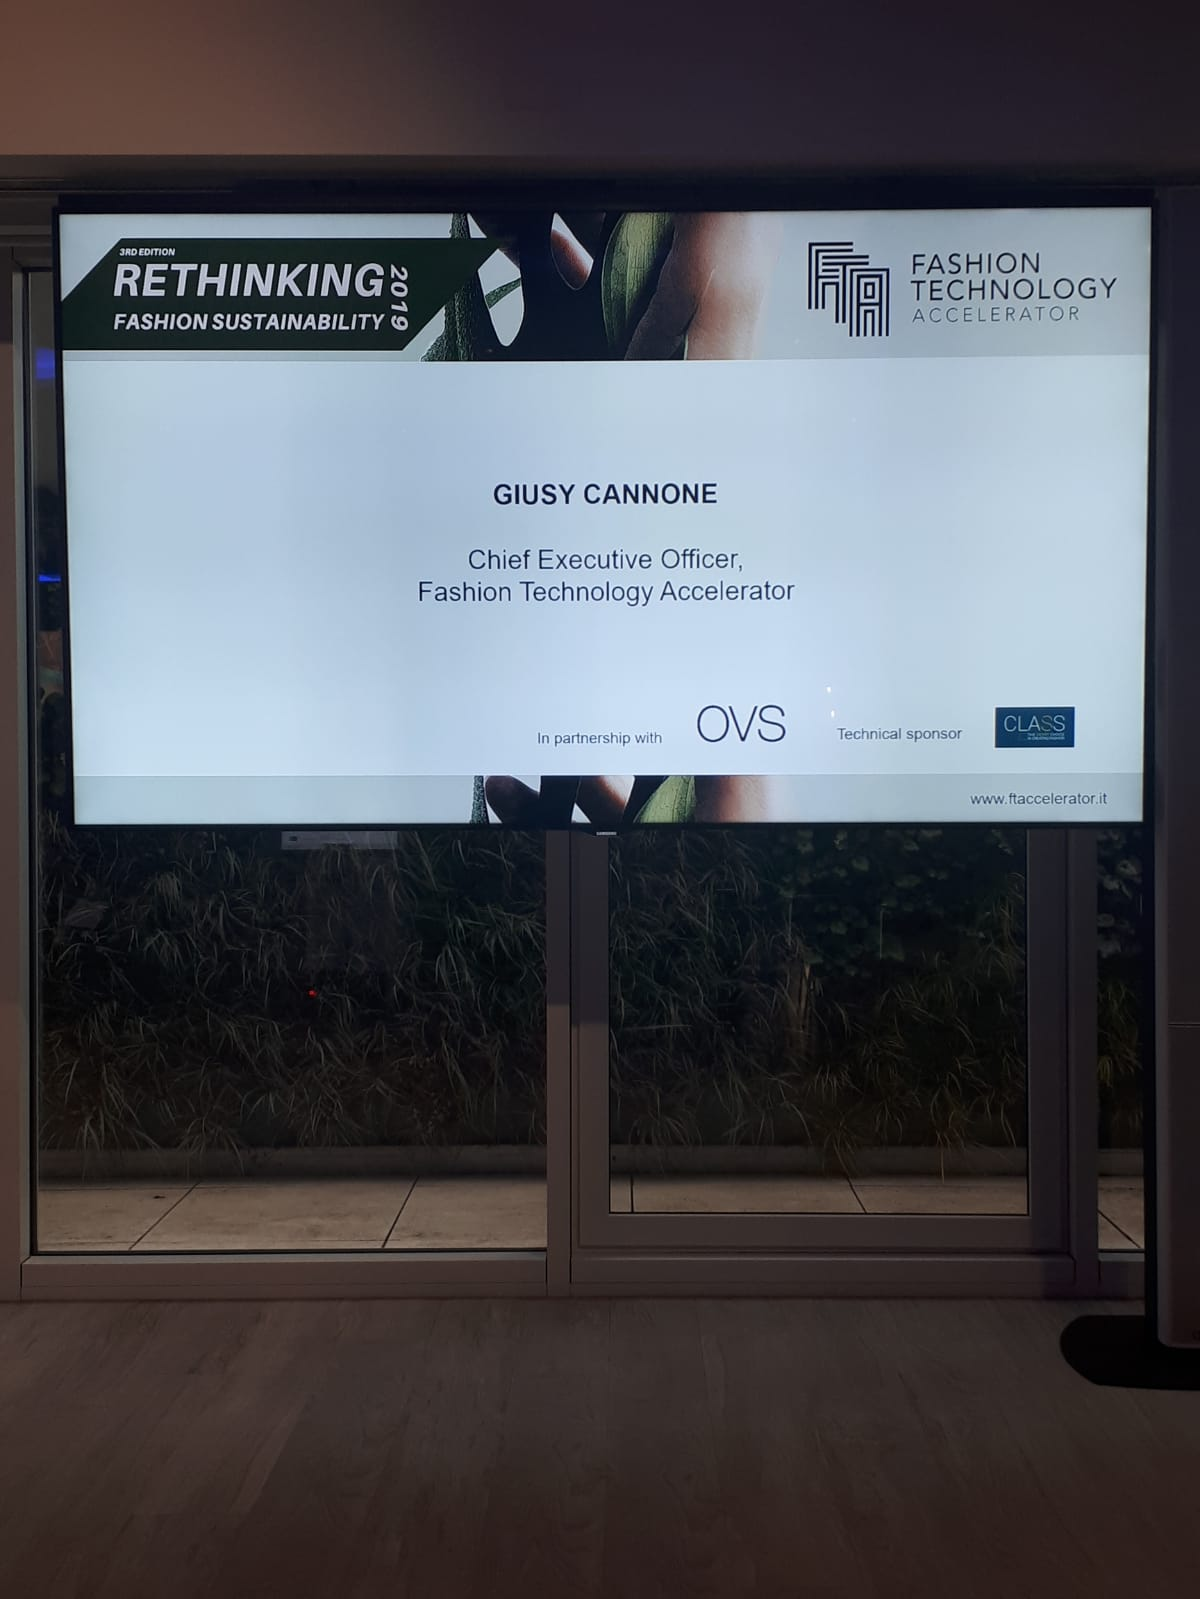 Rethinking Fashion Sustainability – Milan, March 7th, 2019